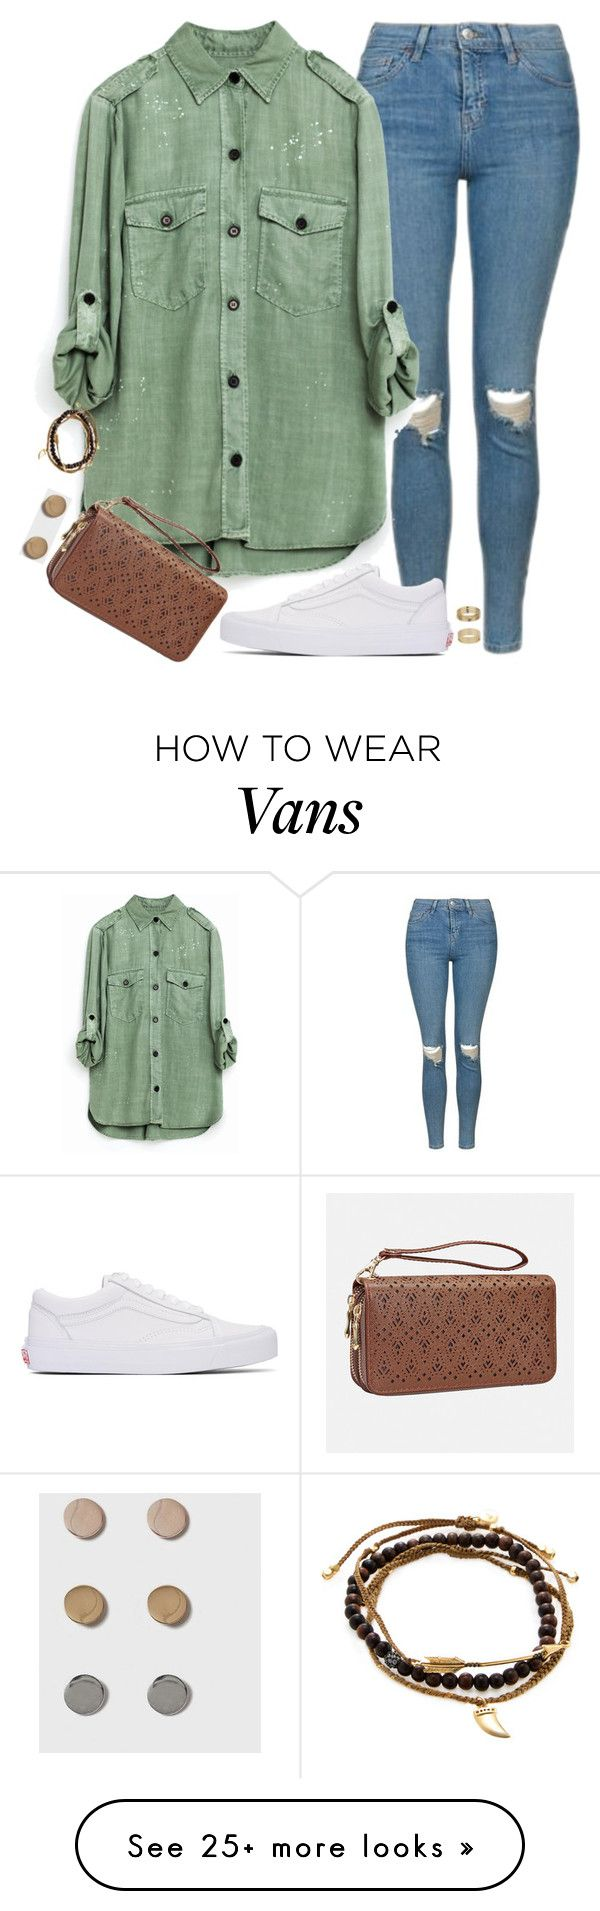 """Quiero que te quedes junto a mi / I want you to stay with me"" by ferny117 on Polyvore featuring Topshop, Vans, Avenue, Dorothy Perkins, Miss Selfridge, lyrics and Shakira"